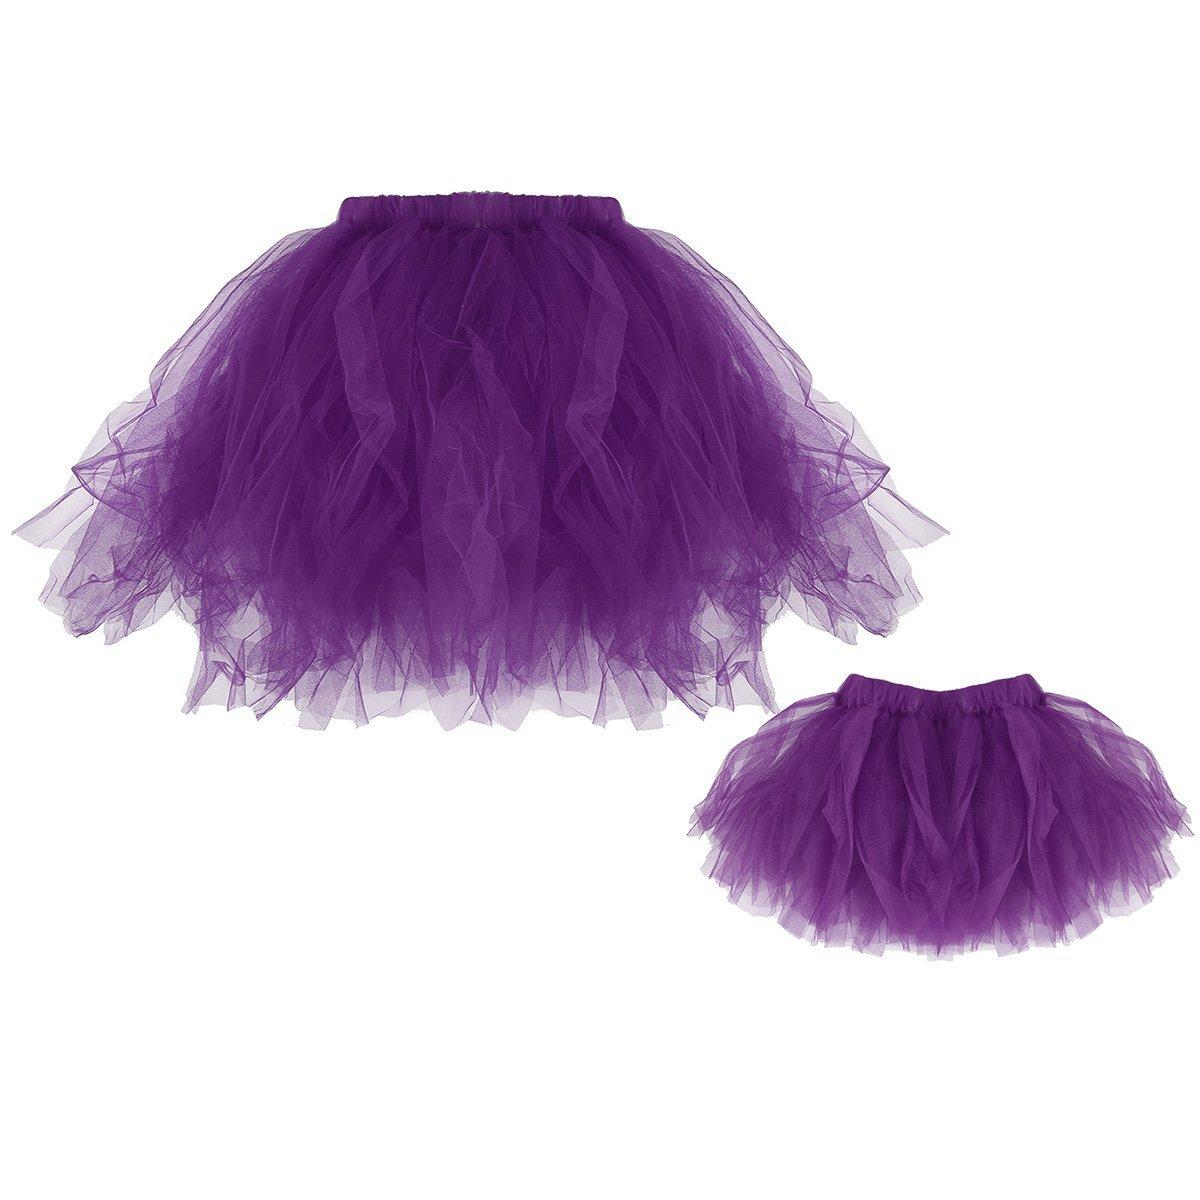 Mother and Daughter Dress Family Clothes Mommy Mom Girls Matching Tutu Skirt Fashion Tulle Summer Multi Color Hot Sale